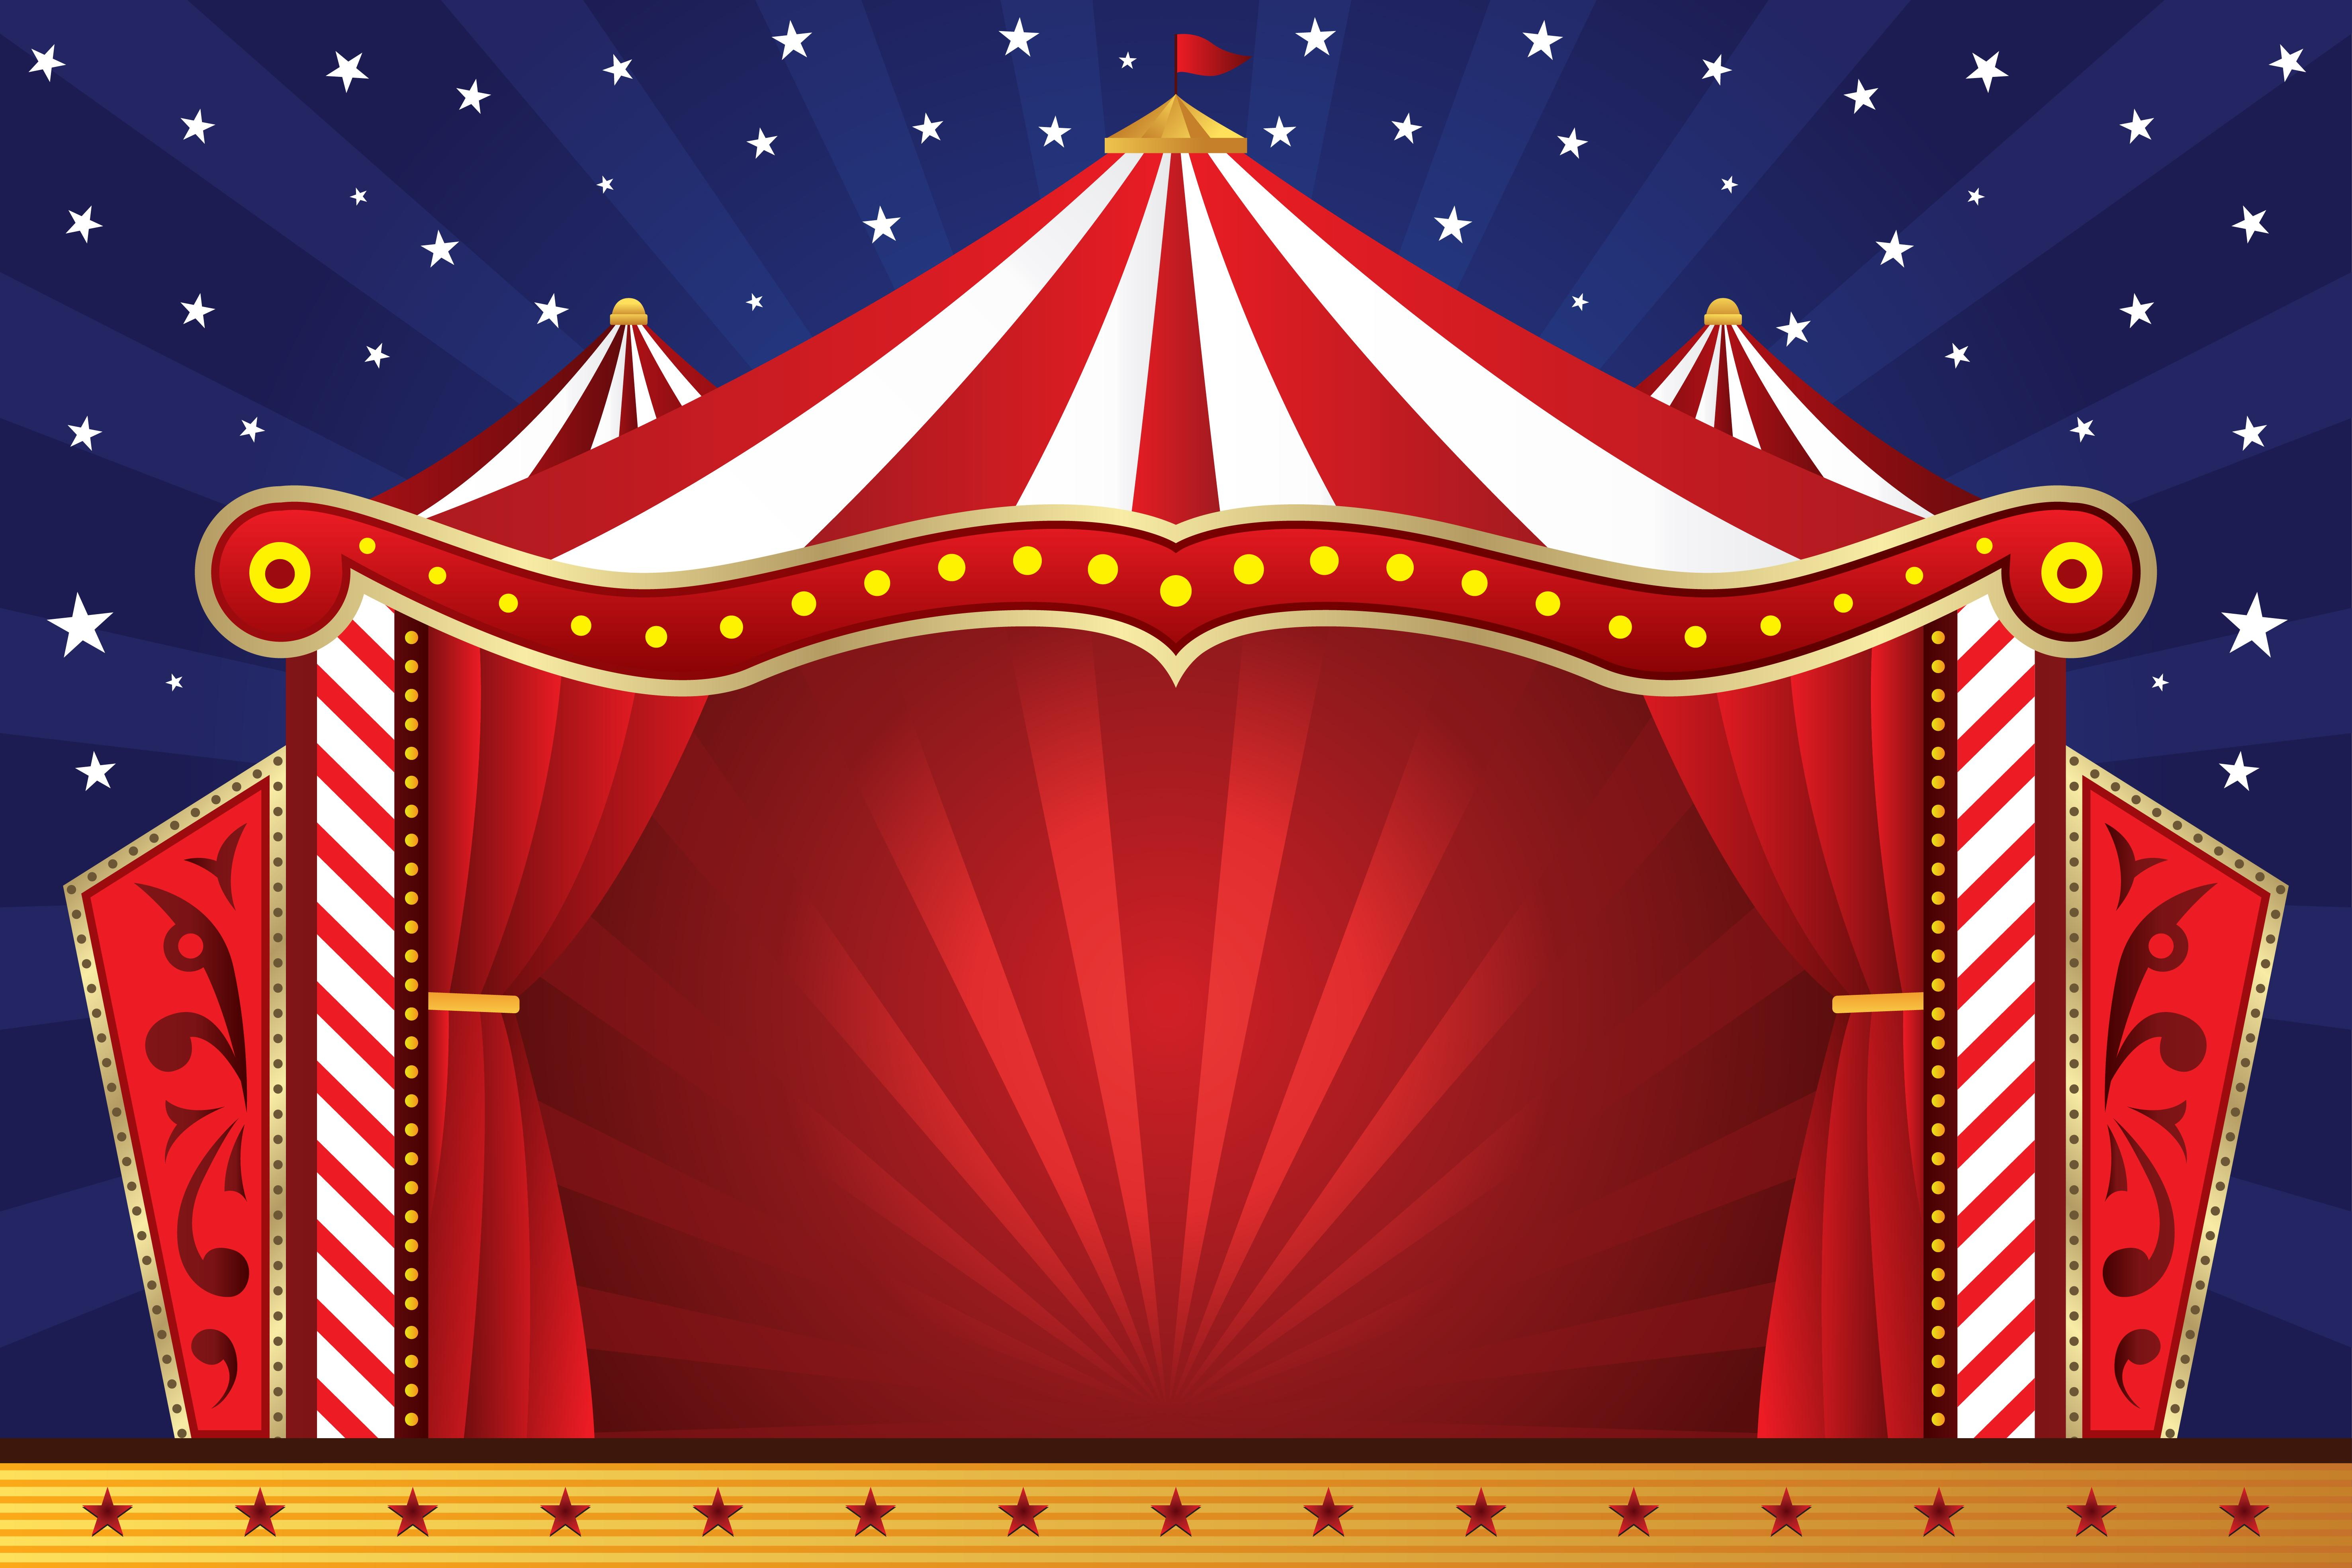 Tent clipart carnival booth Download Background Carnival Tents Wallpapers